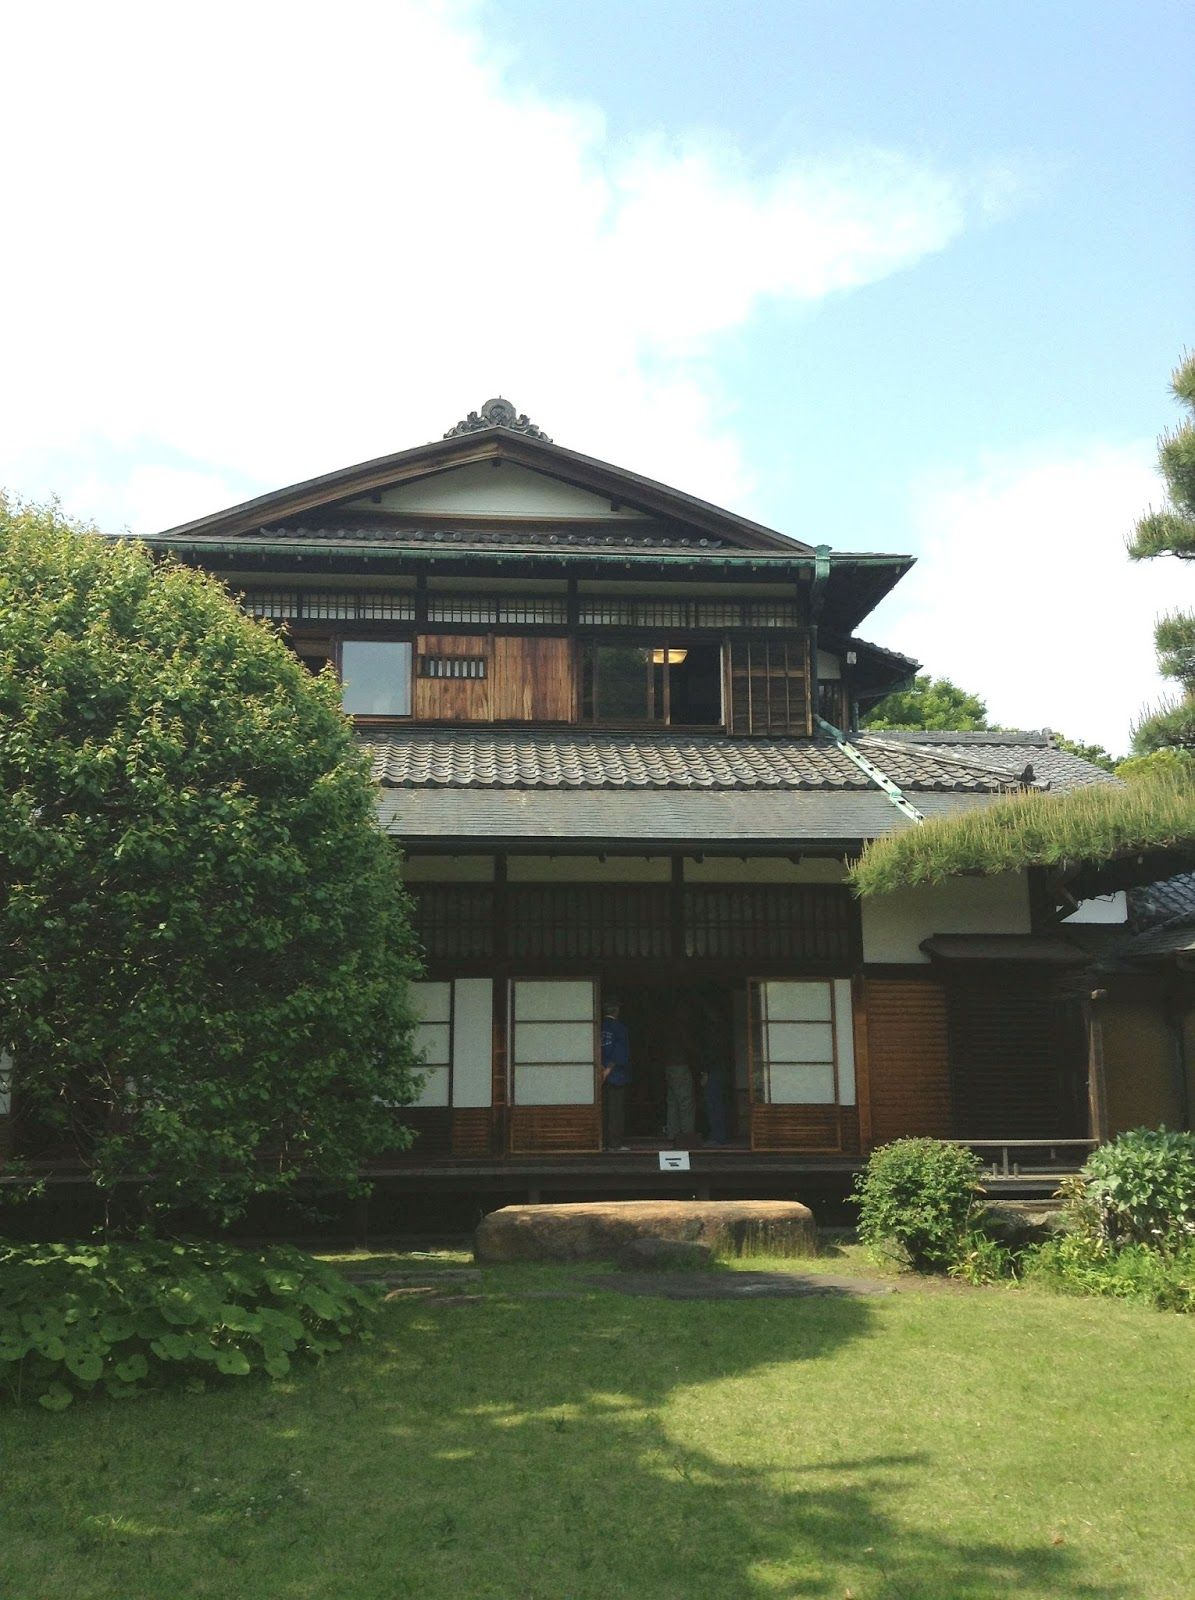 Architecture Stunning Japanese Green Garden And House With